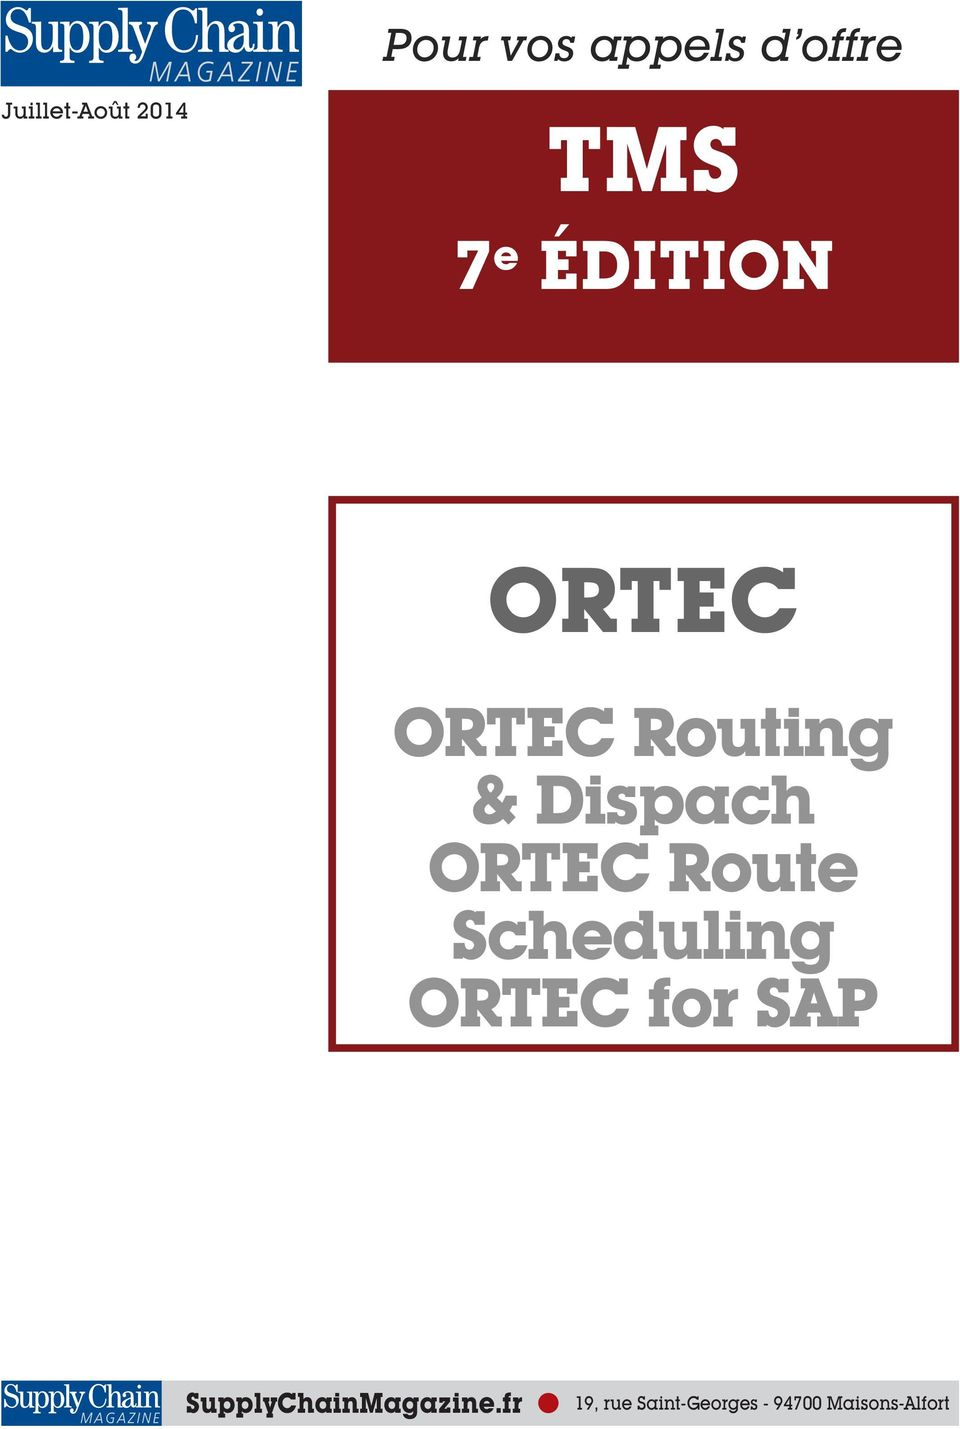 Route Scheduling ORTEC for SAP